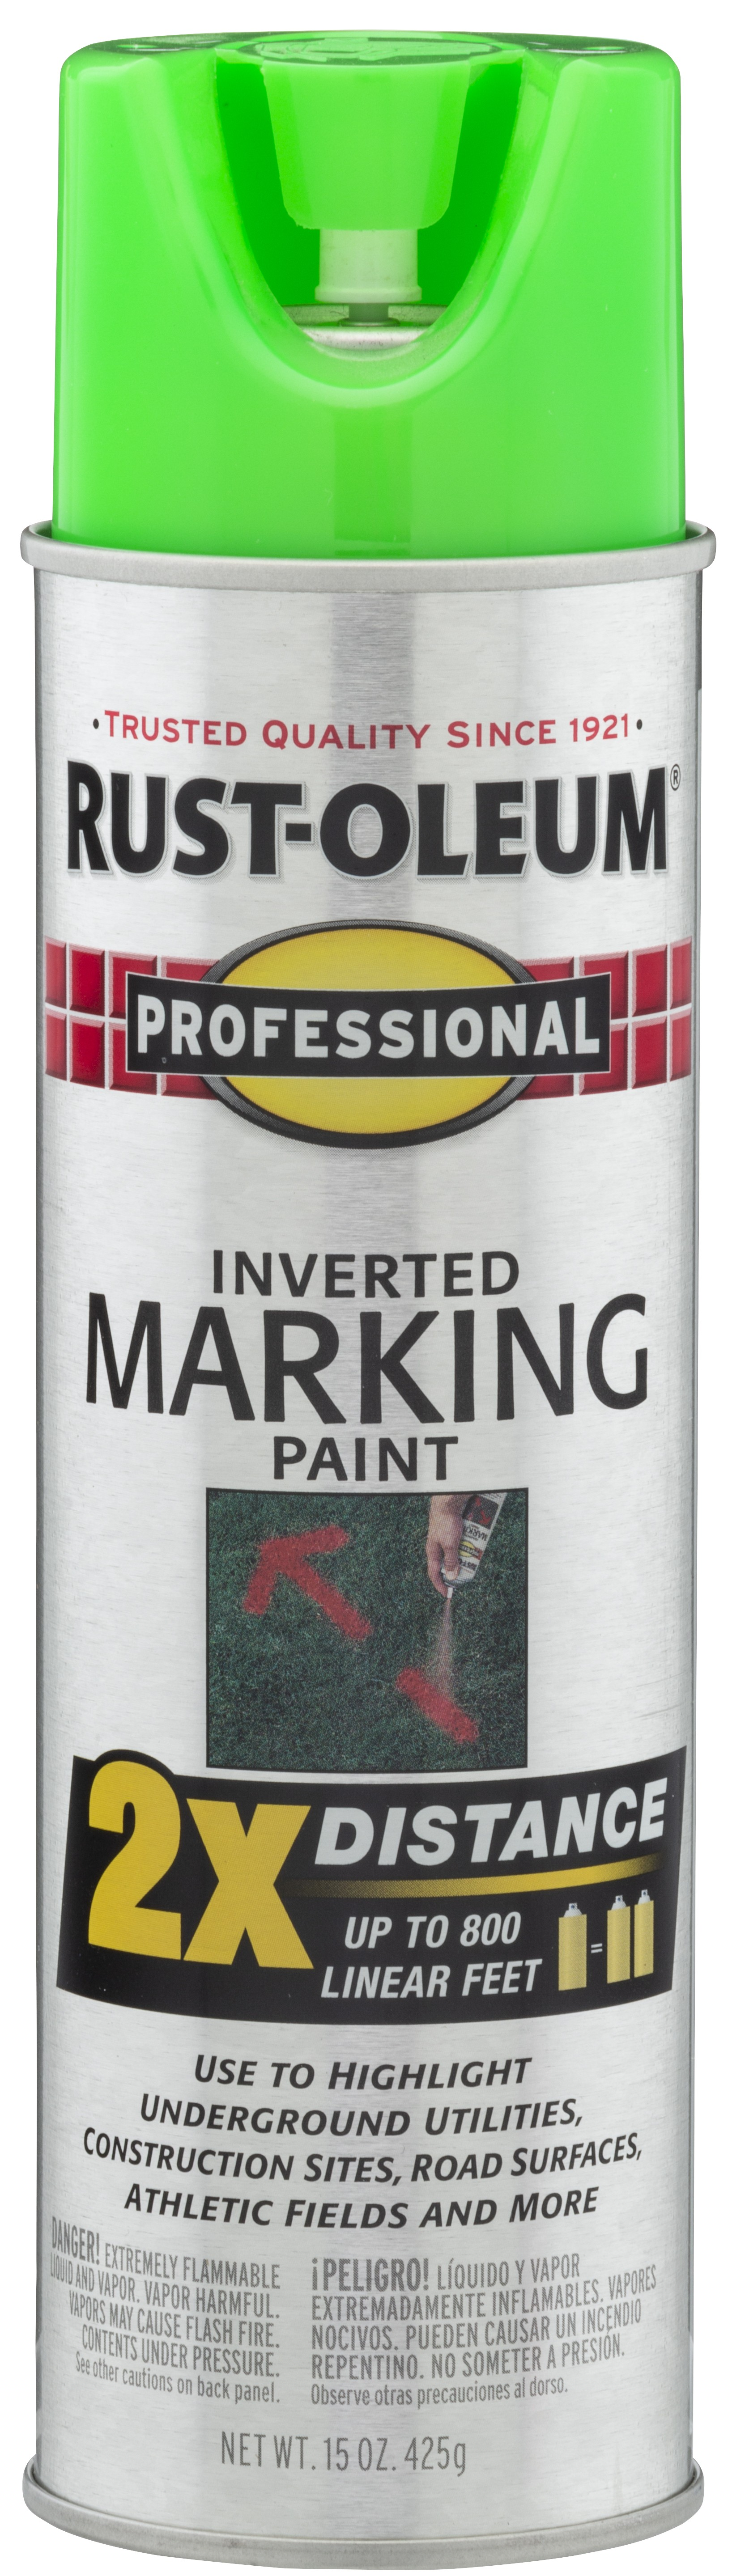 (3 Pack) Rust-Oleum Professional Fluorescent Green Inverted Marking Spray Paint, 15 oz